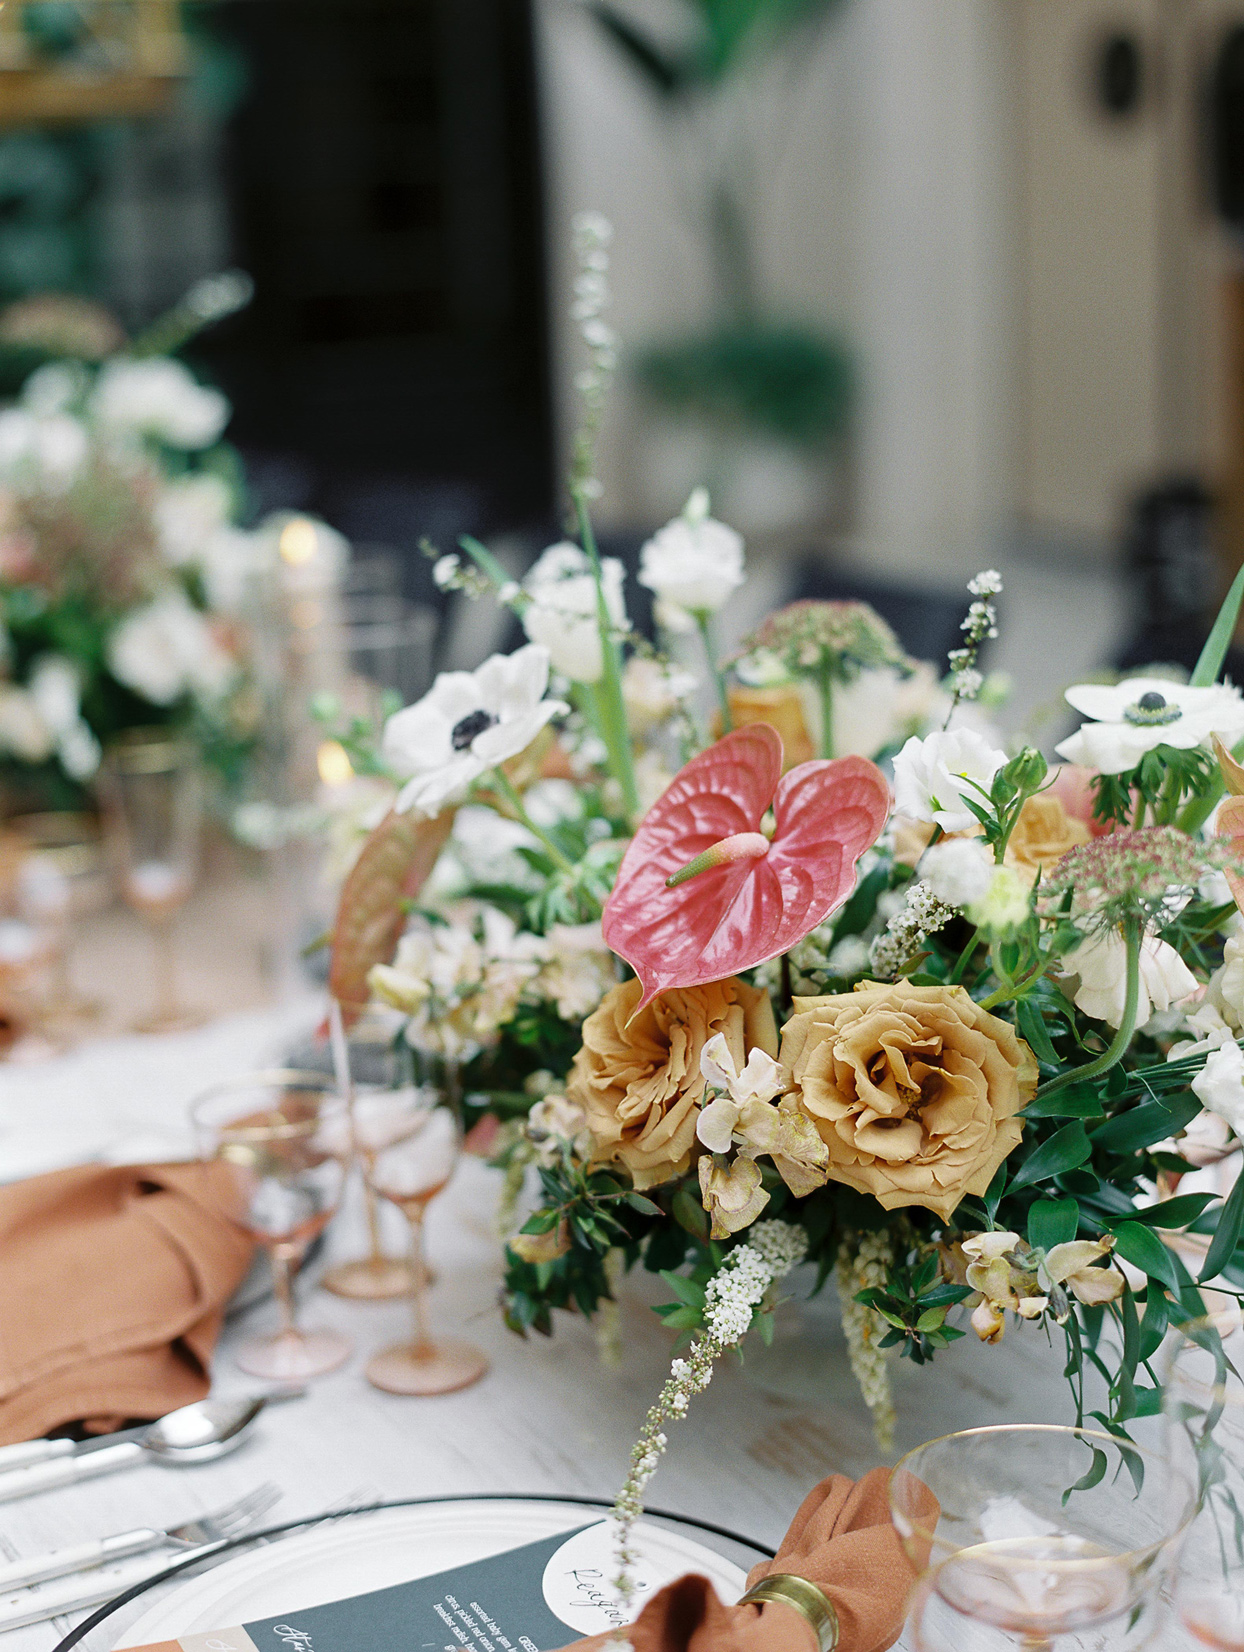 wedding reception centerpiece comprised of poppies roses and anthurium flowers